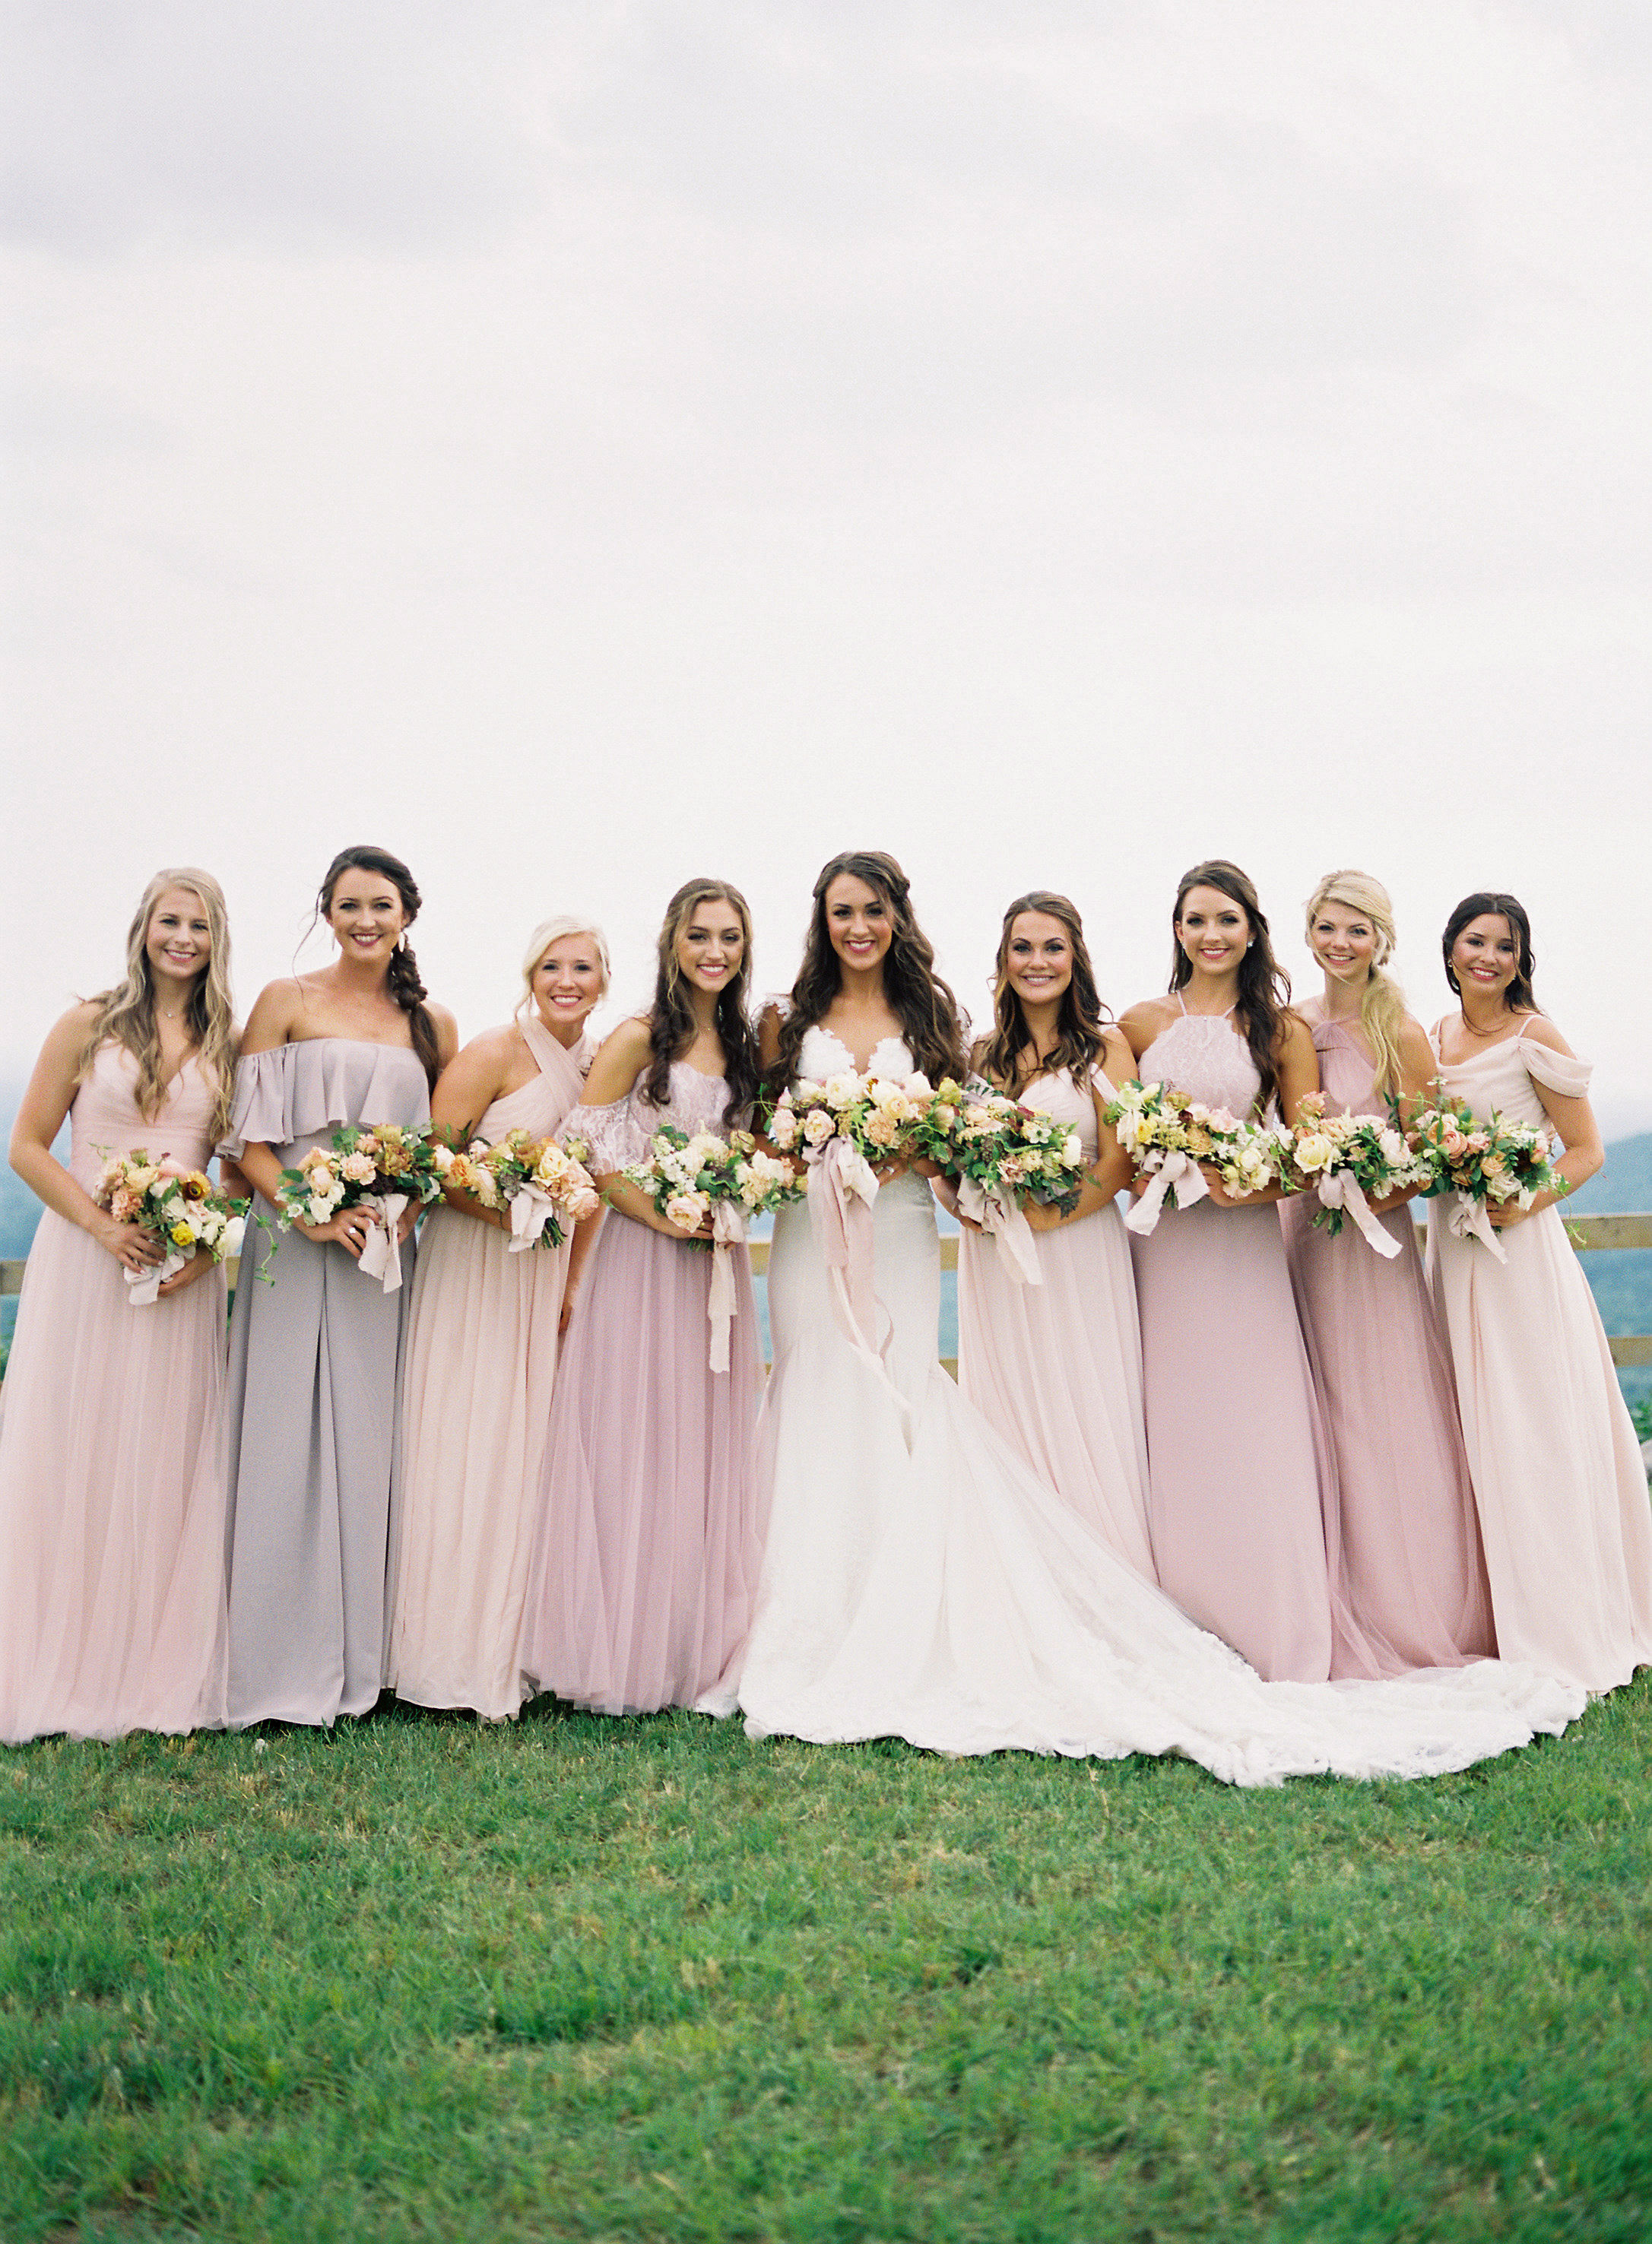 bride and bridesmaids outdoors pink shade dresses